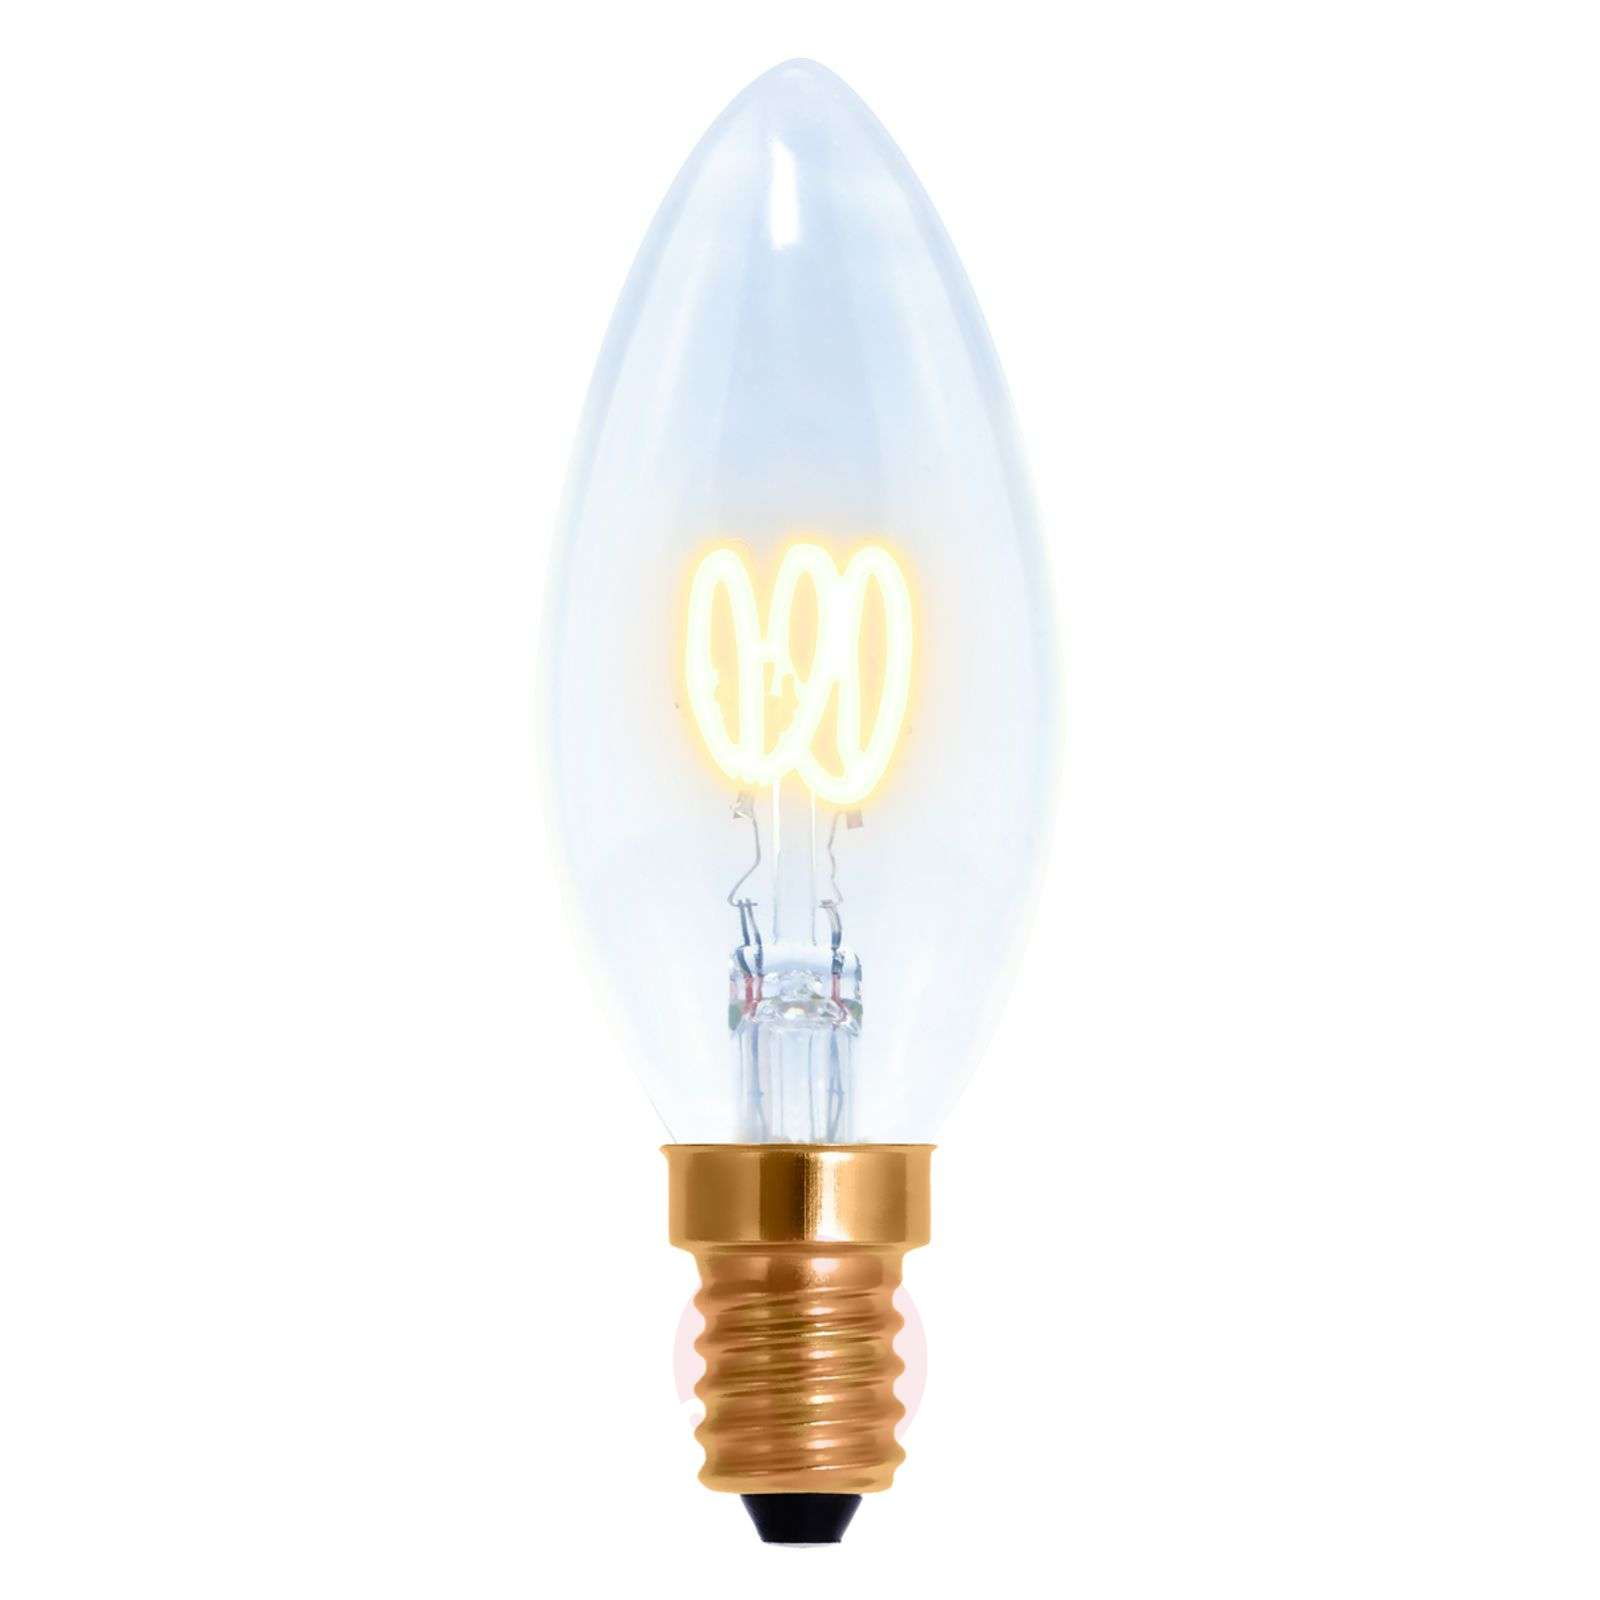 E14 2,7W 922 LED-filament-kaarslamp Curved Line-8536158-01